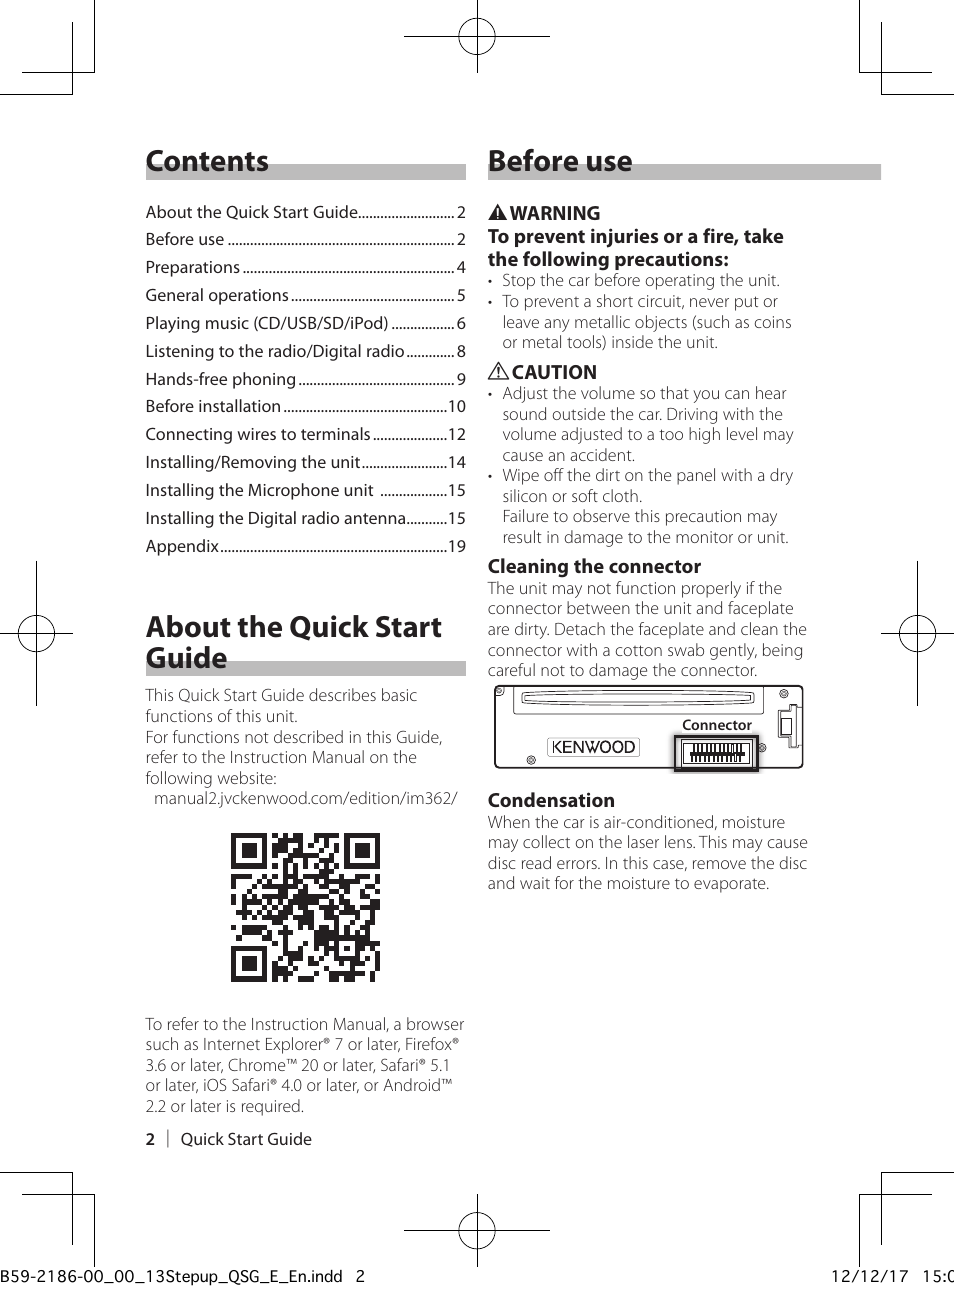 Contents before use, About the quick start guide | Kenwood KDC-BT53U User  Manual | Page 2 / 20